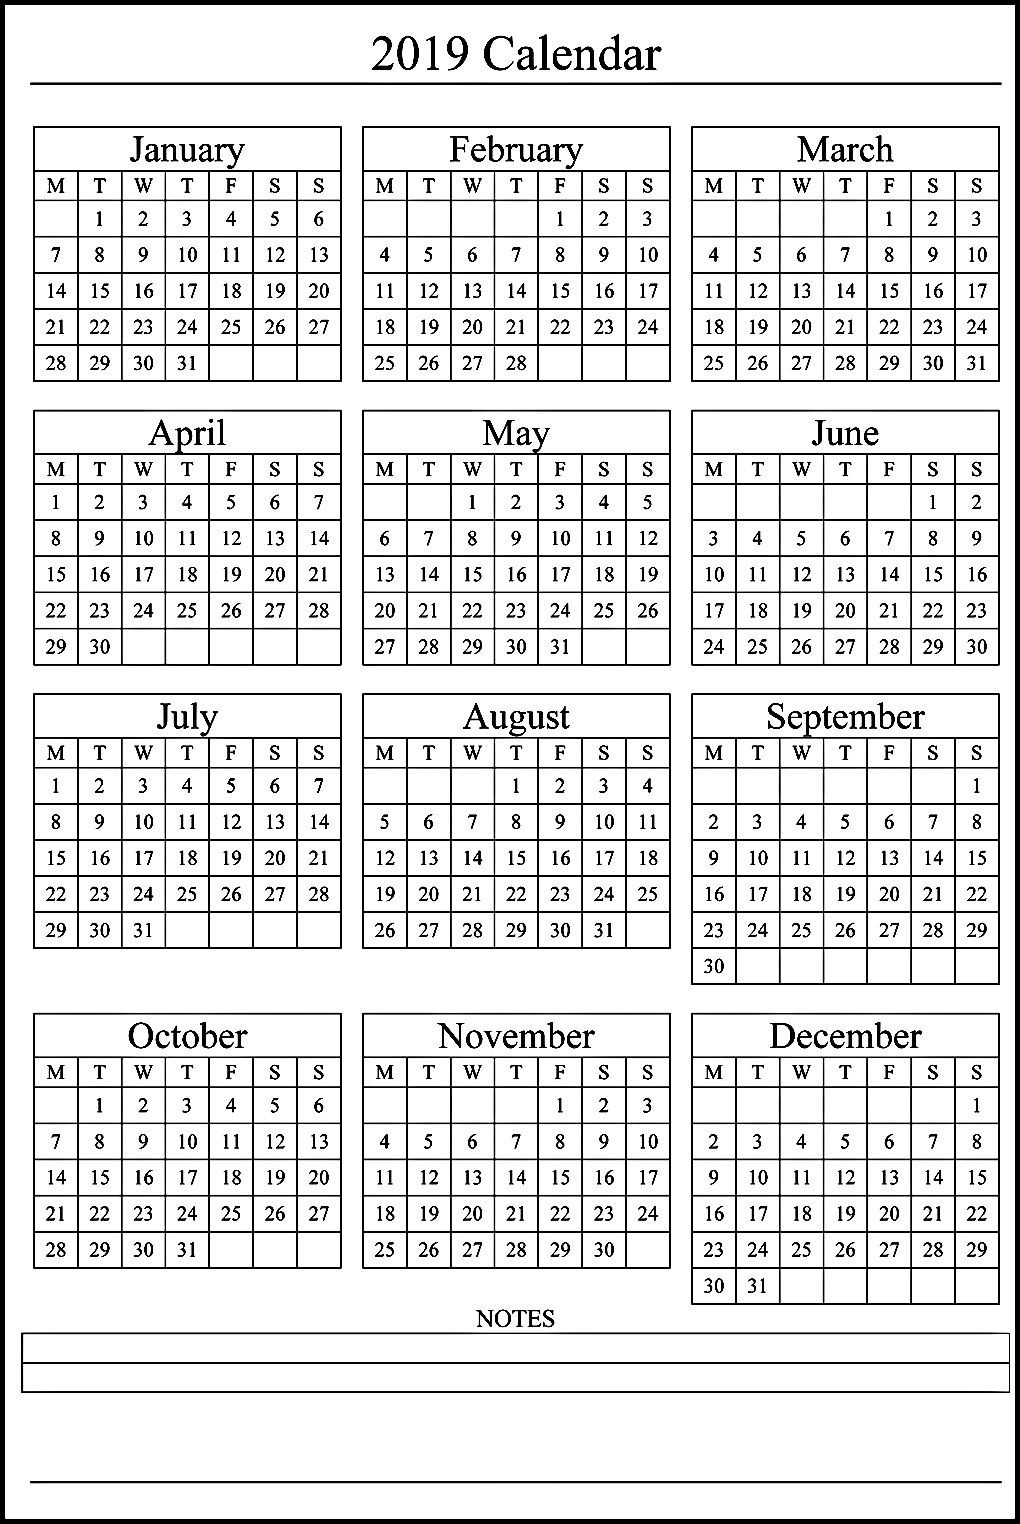 12 Month Calendar On One Page #2019Calendar-6 Months On One Page Template